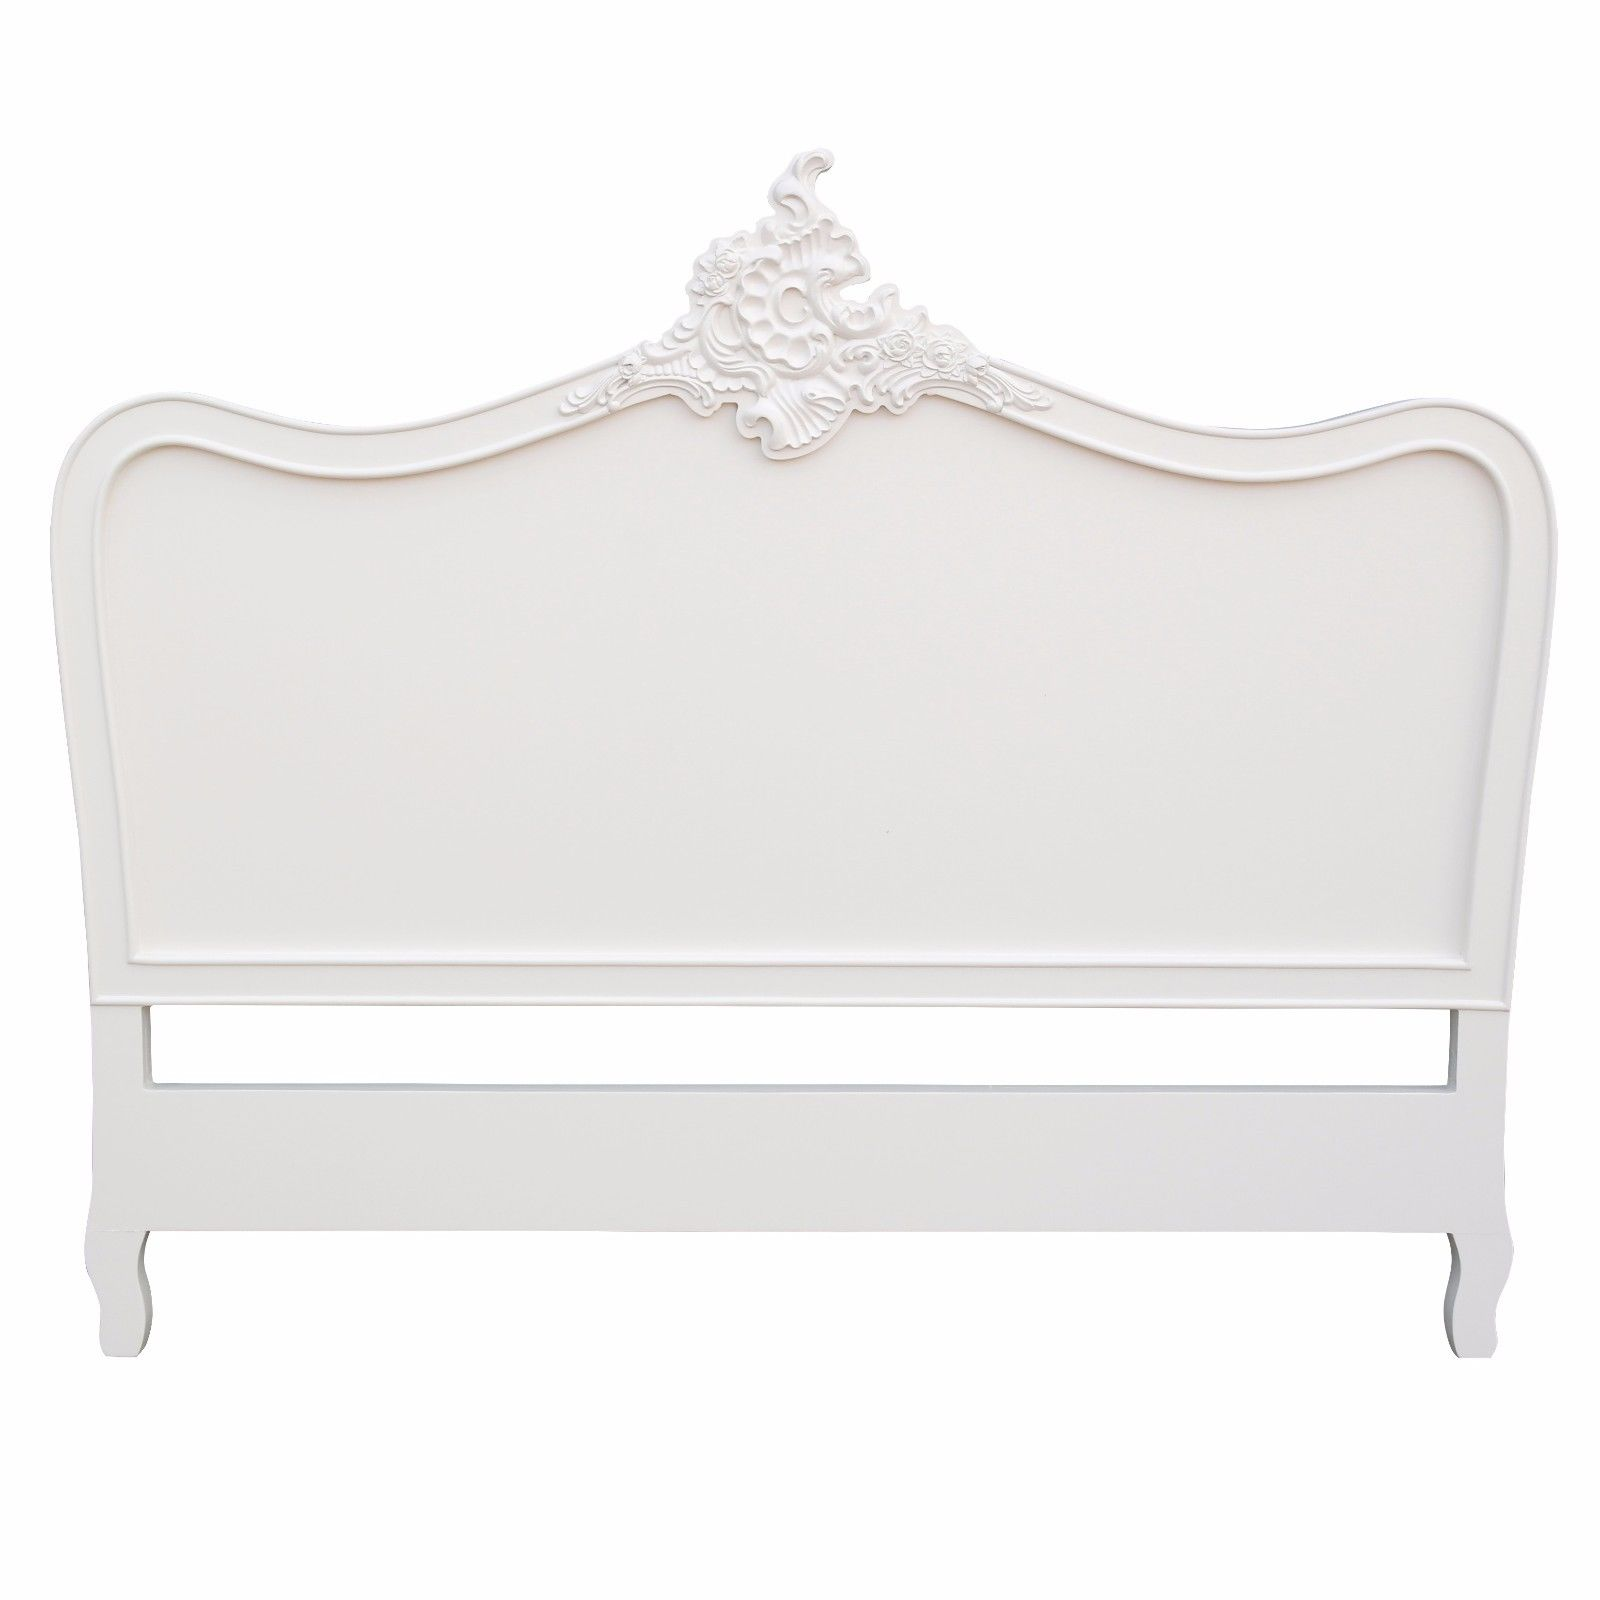 French Cream 4ft6 Double Size Headboard